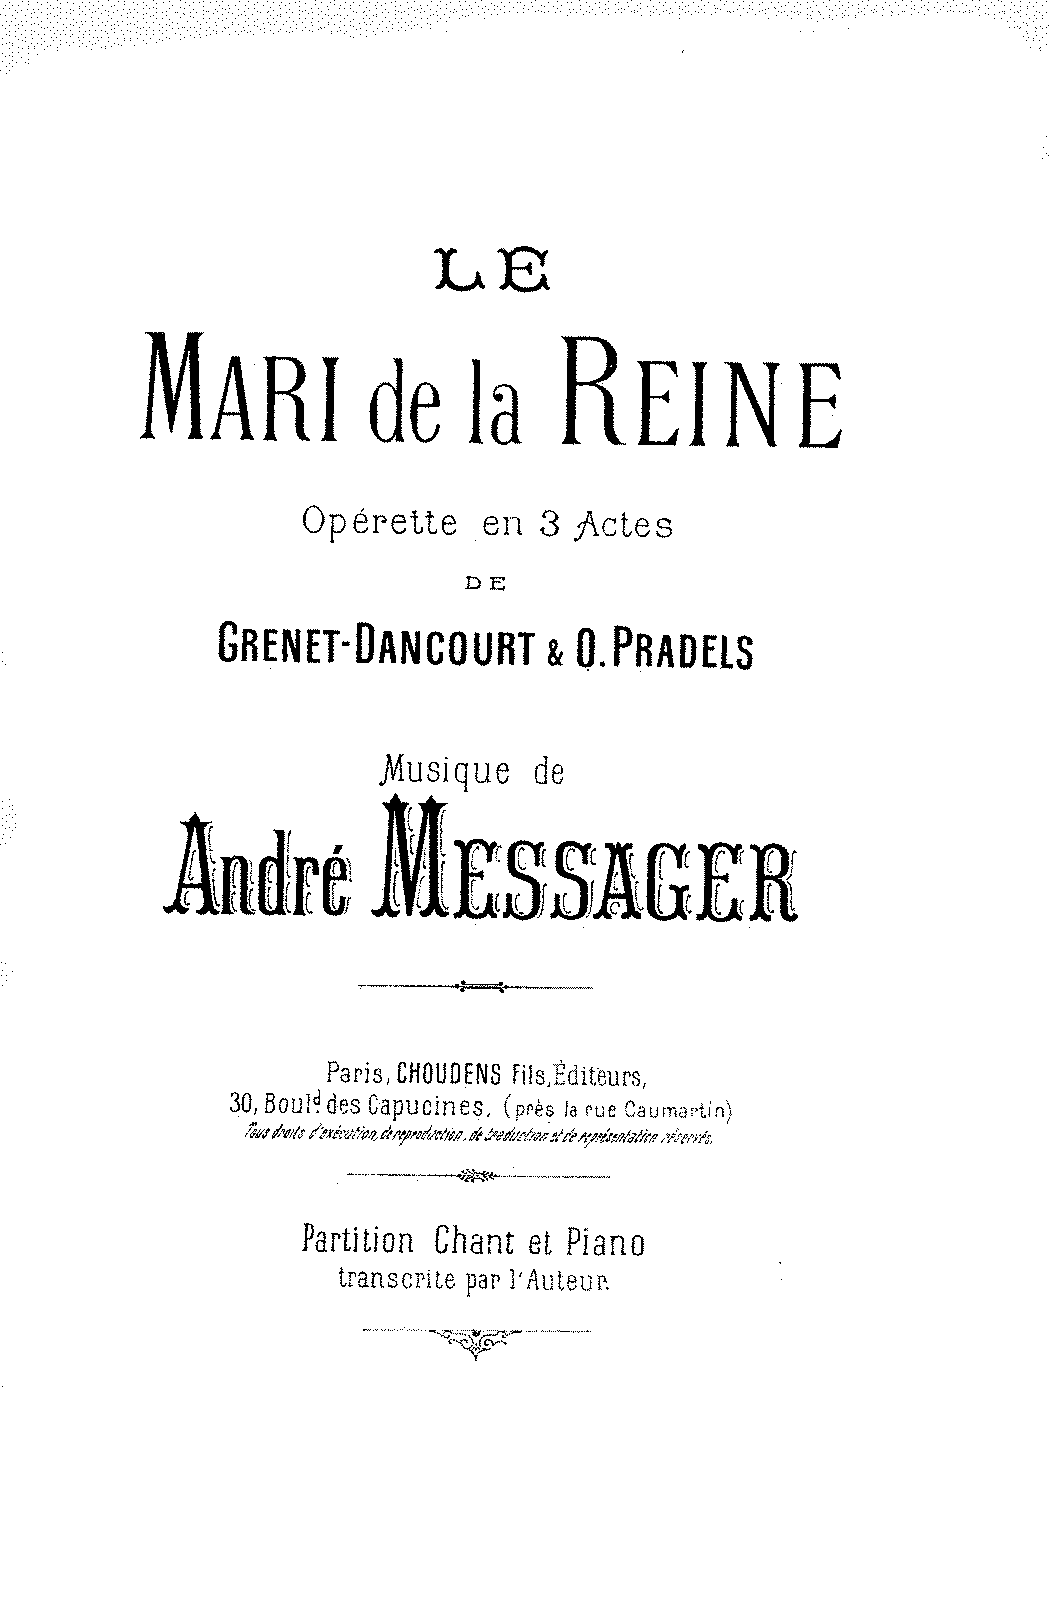 PMLP213825-Messager - Le mari de la reine VS.pdf